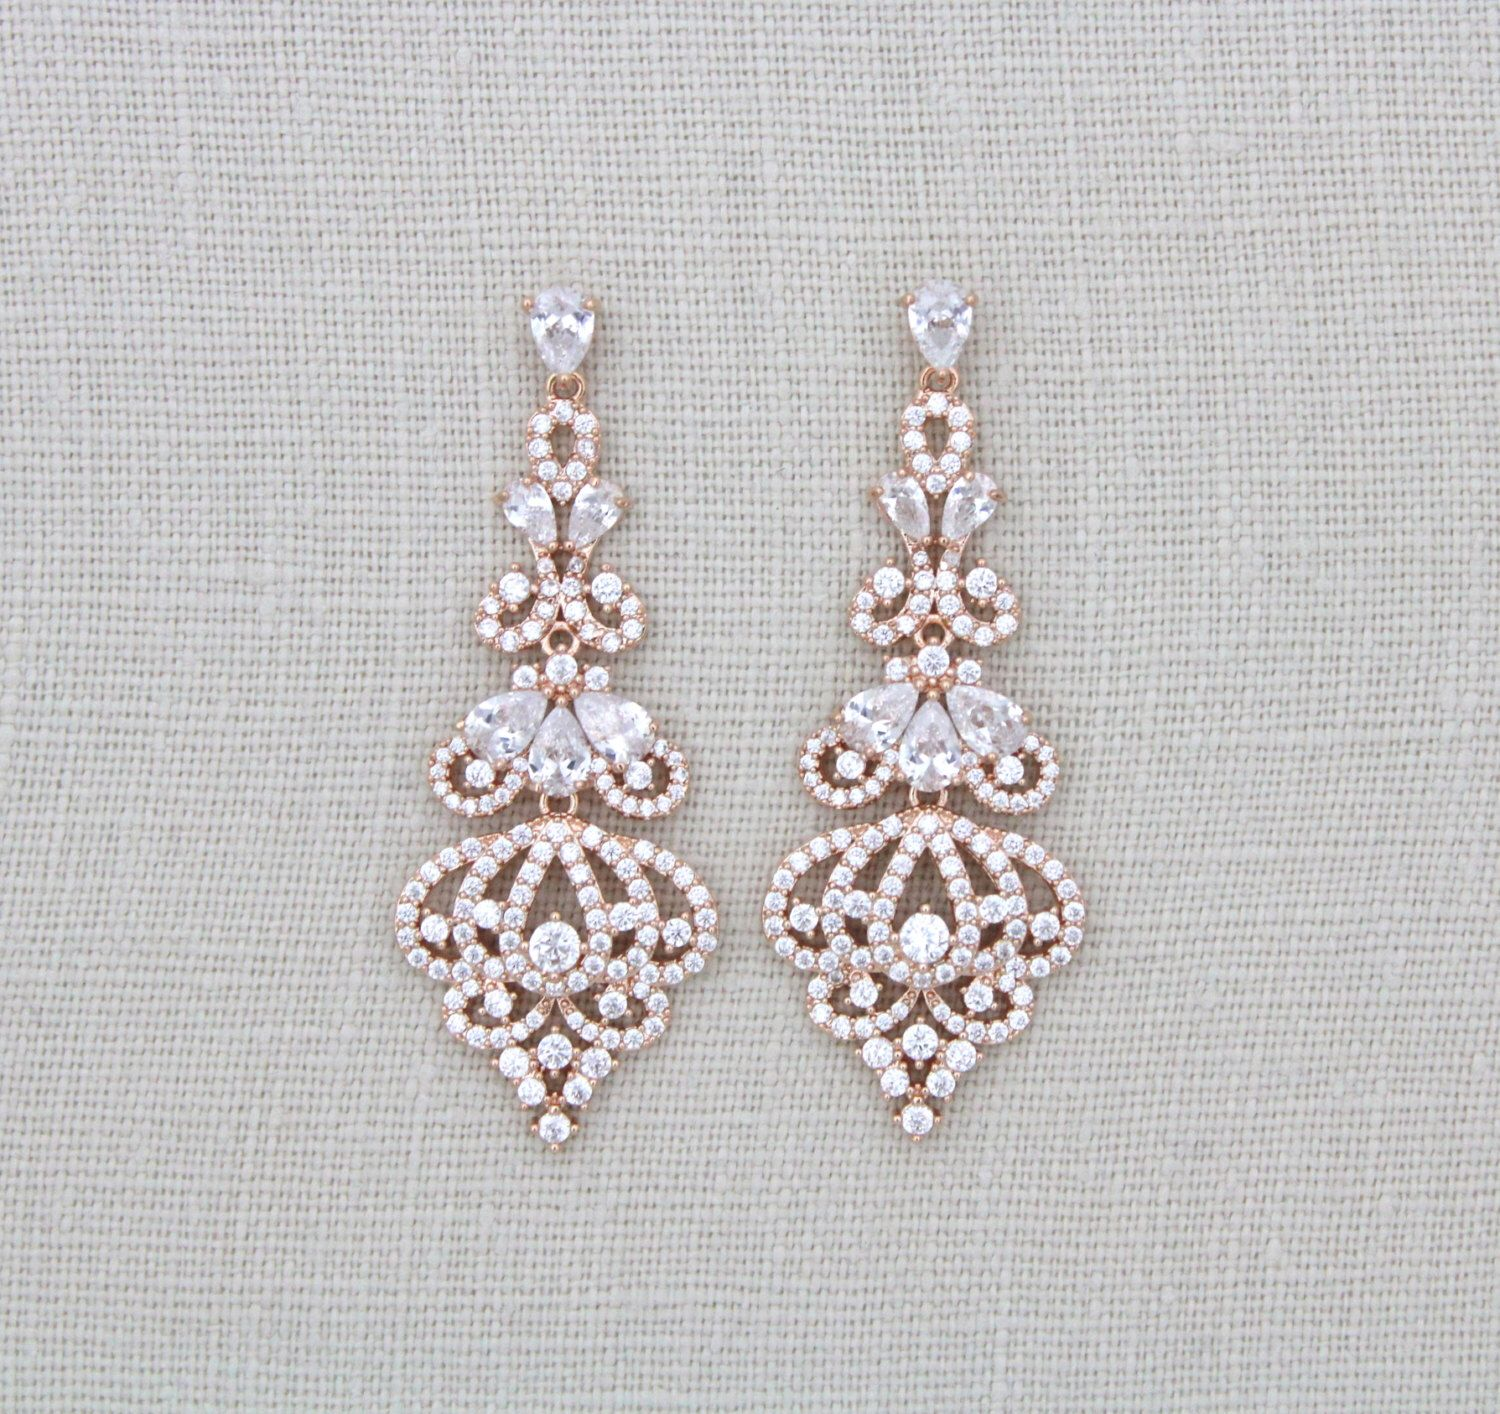 rose gold earrings bridal earrings bridal jewelry. Black Bedroom Furniture Sets. Home Design Ideas